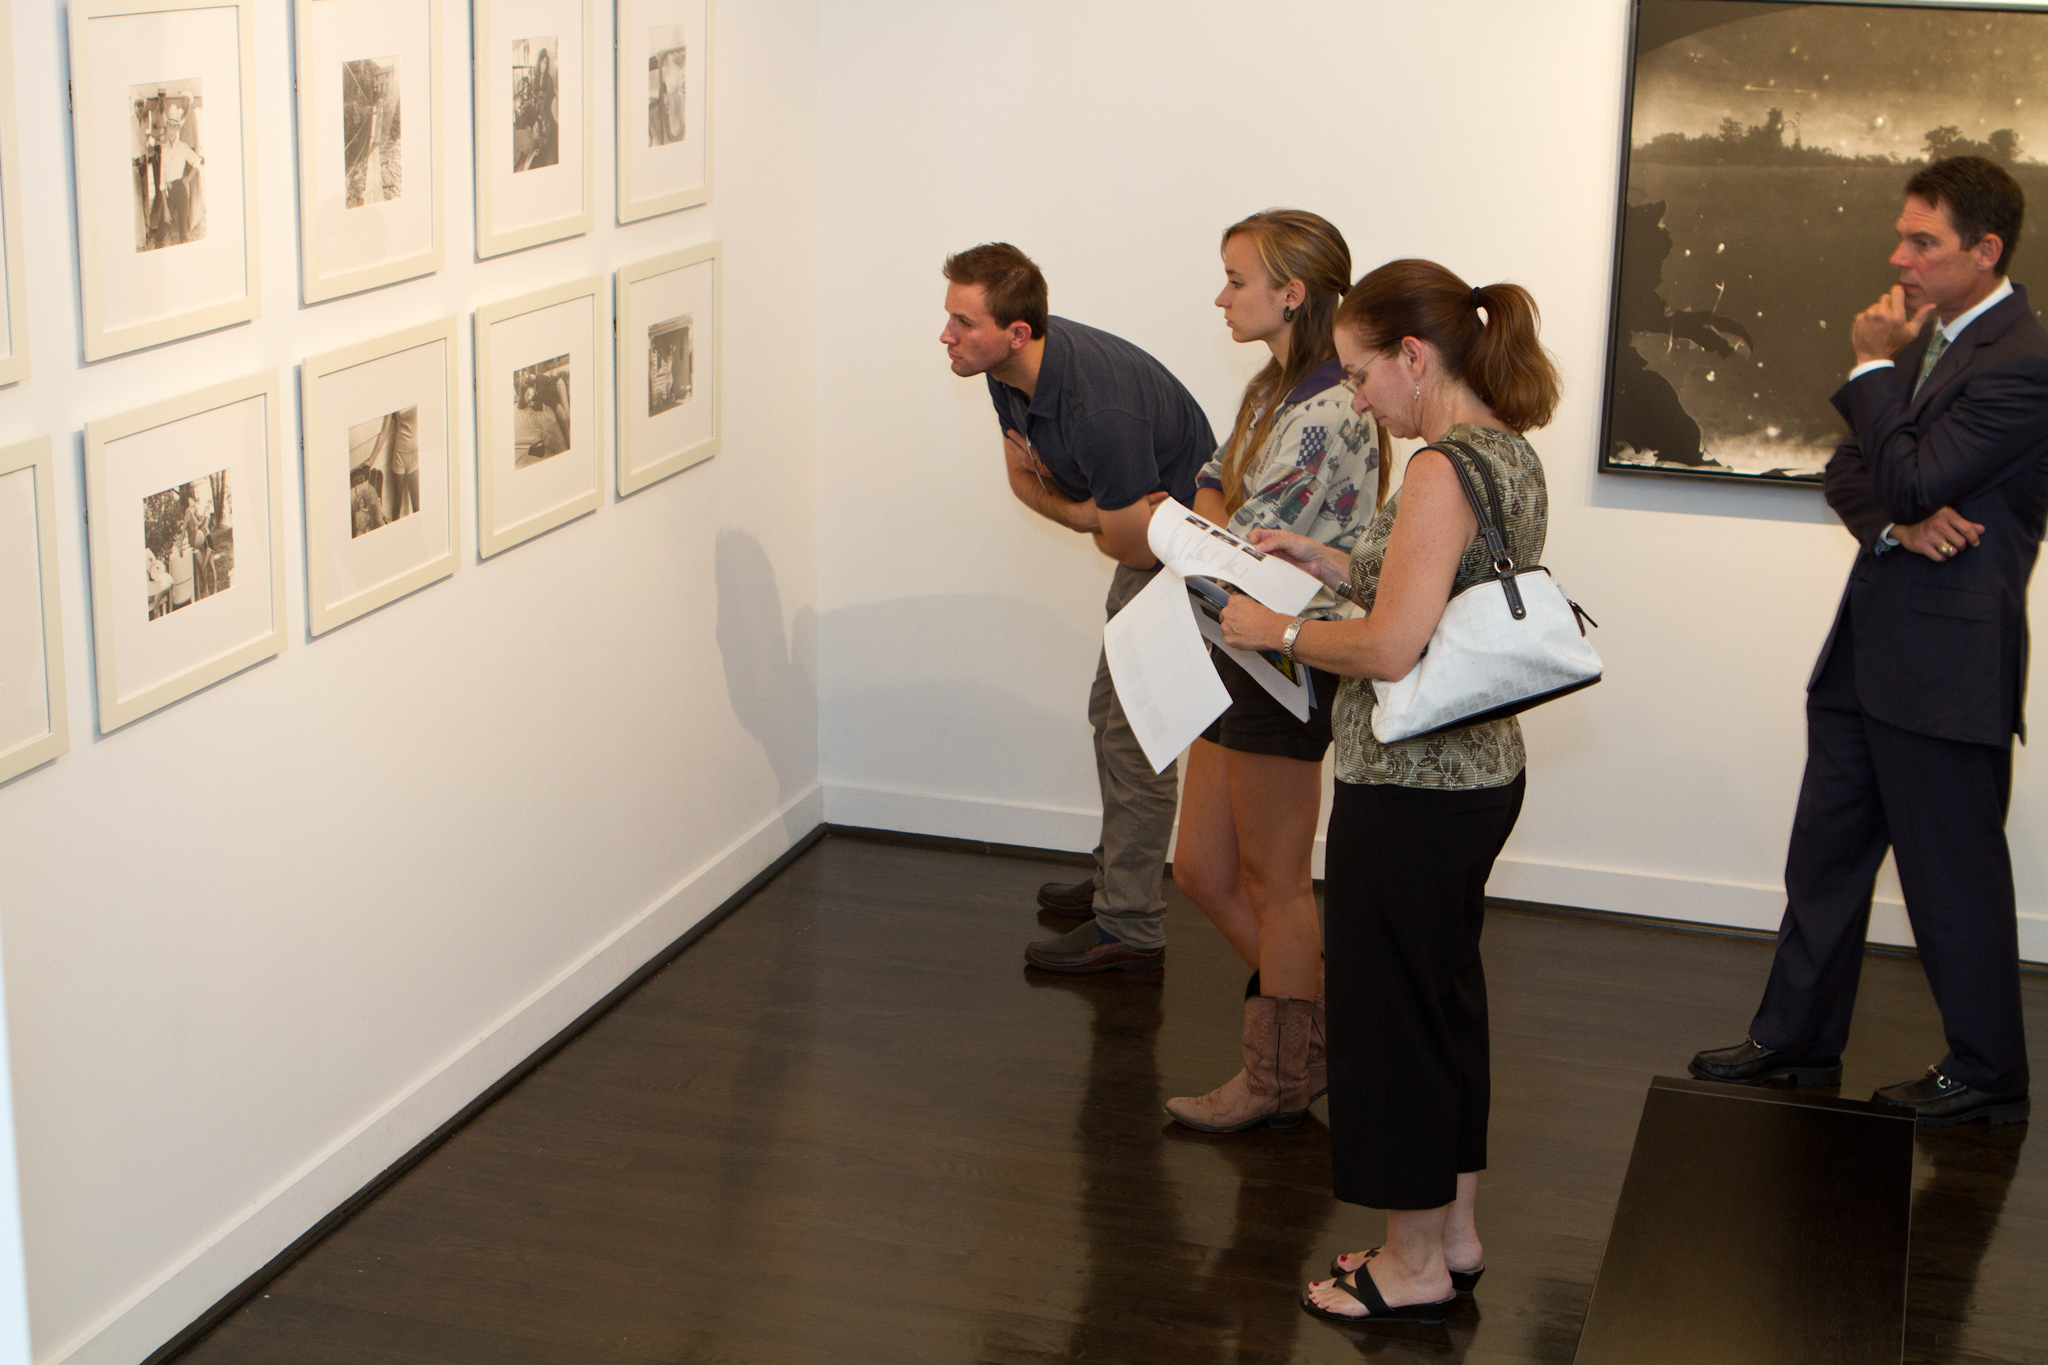 Sally Mann Exhibit at Jackson Fine Art 9/9/11